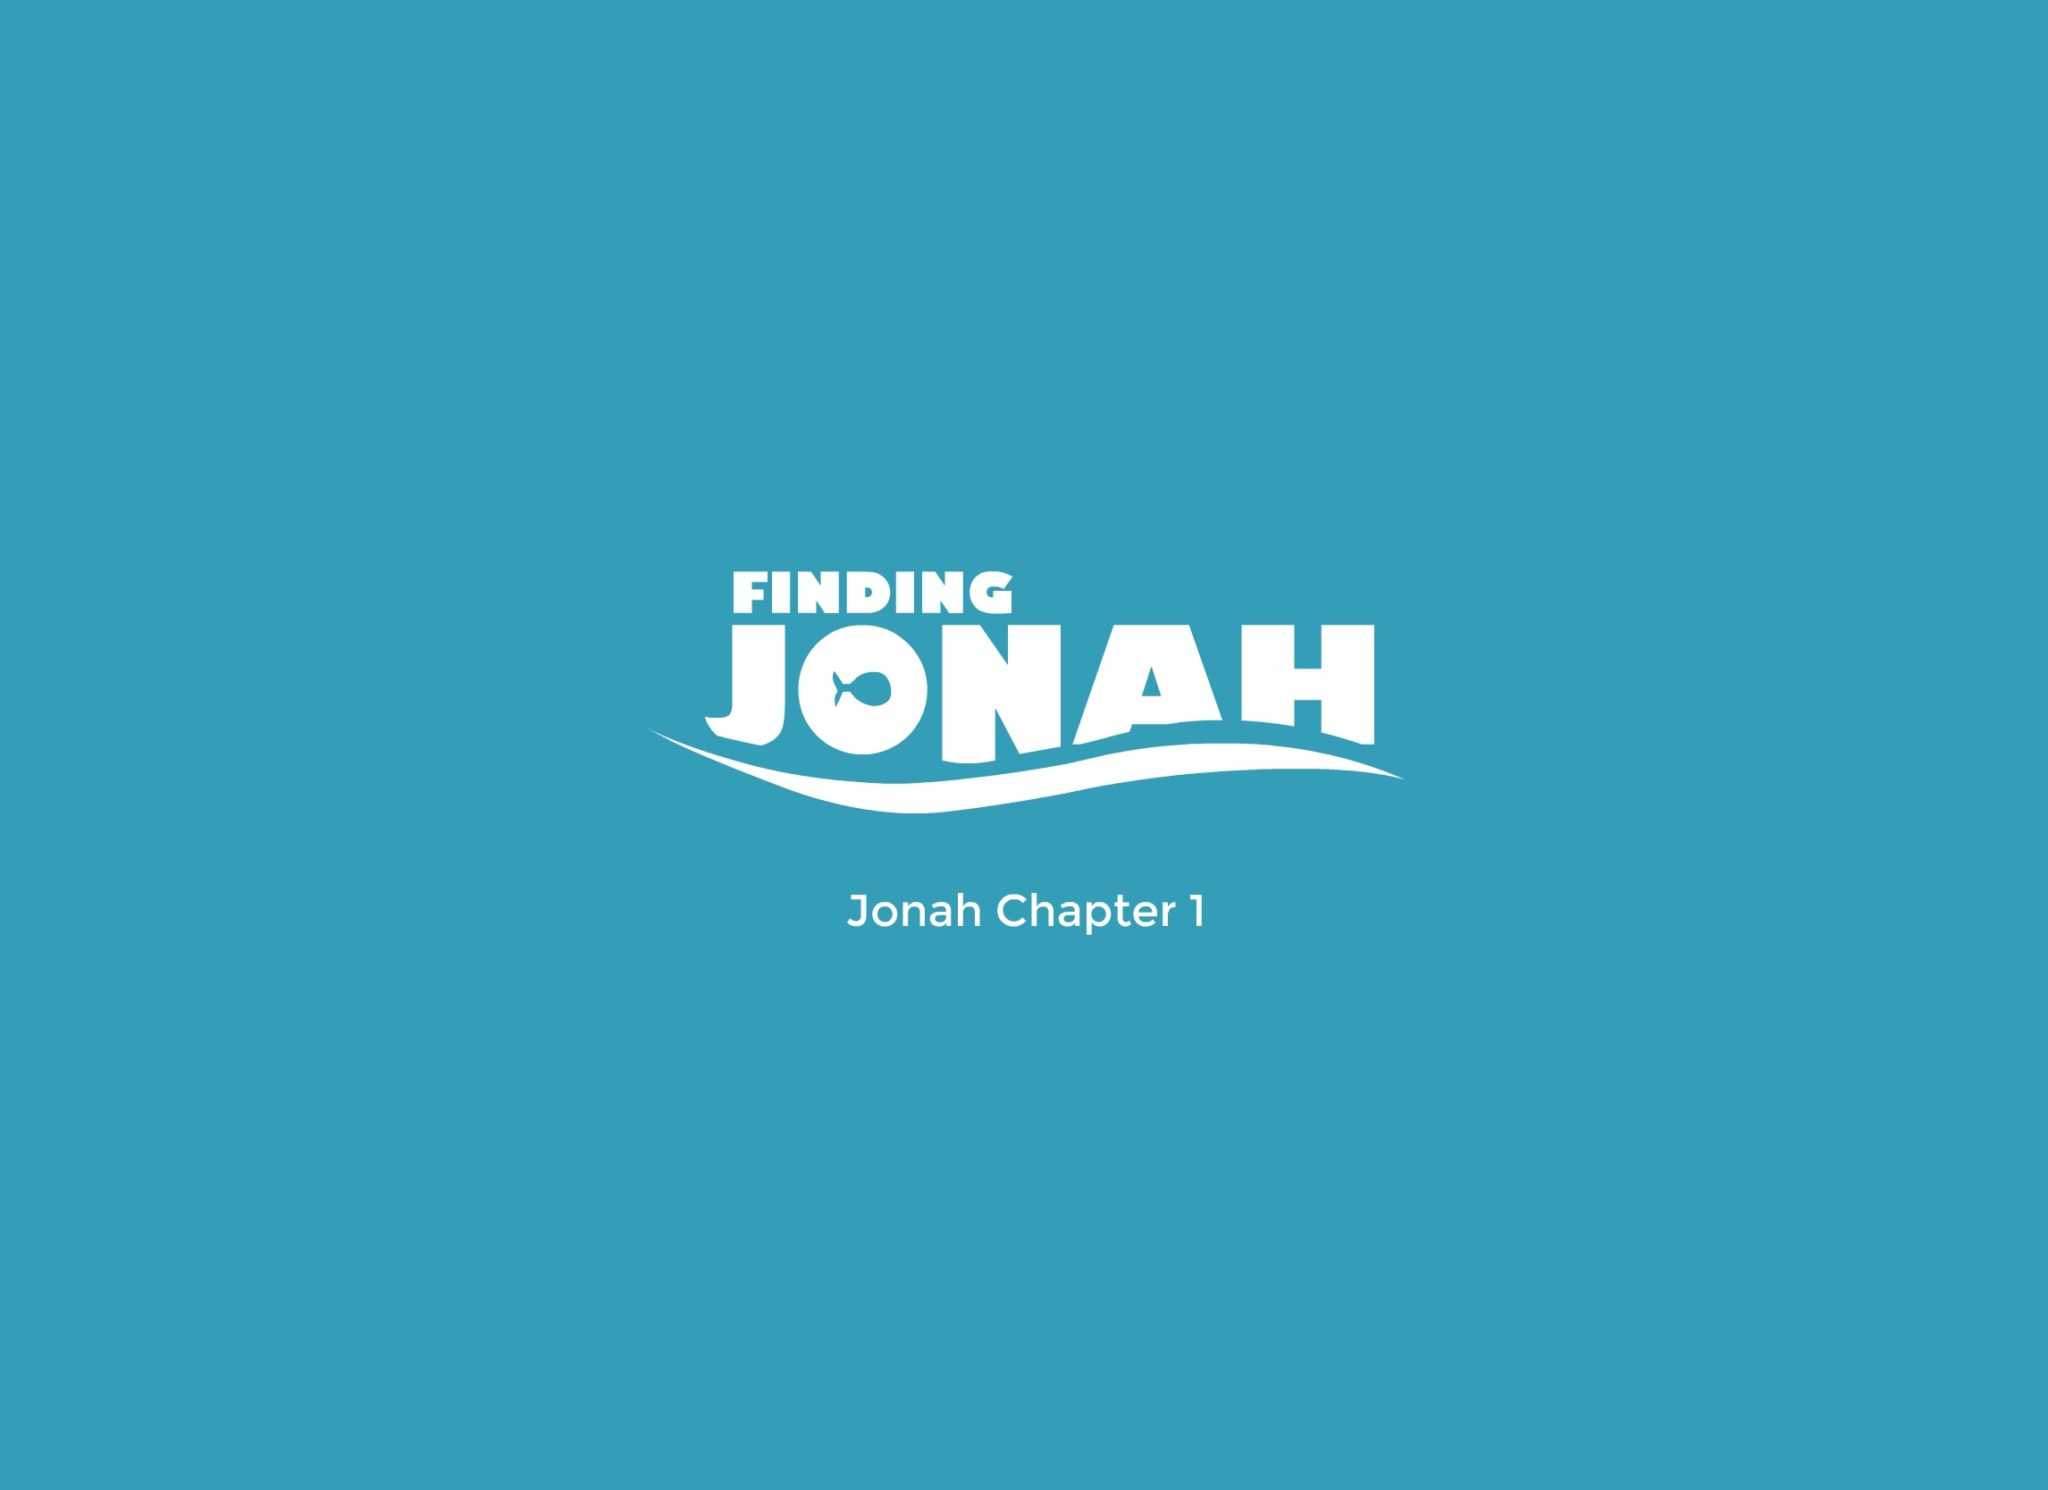 Finding Jonah, a talk based on the book of Jonah Chapter 1